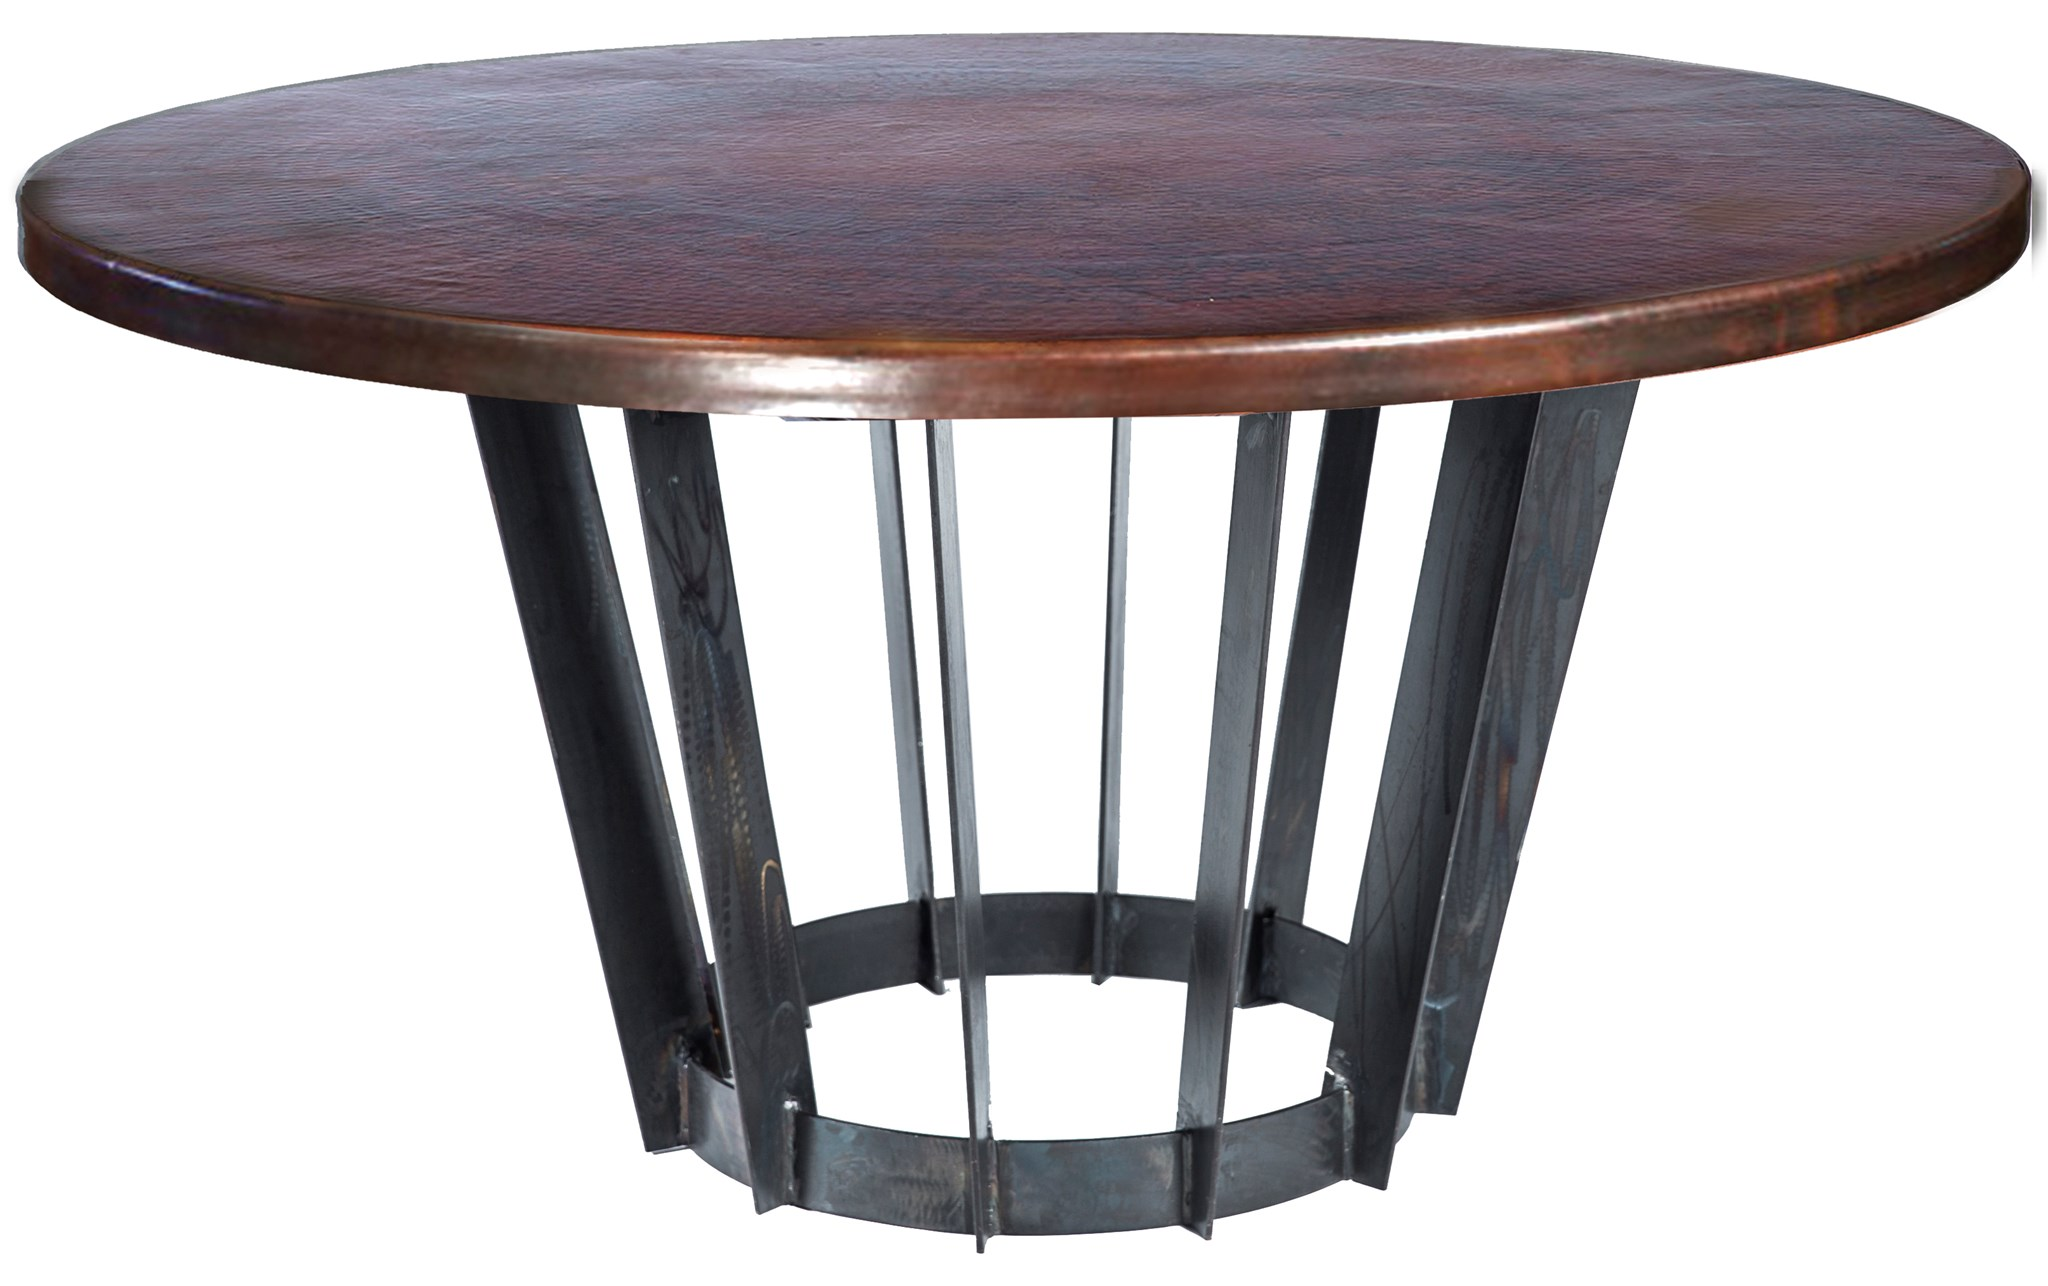 Dexter Dining Table With Round Dark Brown Hammered Copper Top - Hammered copper round dining table